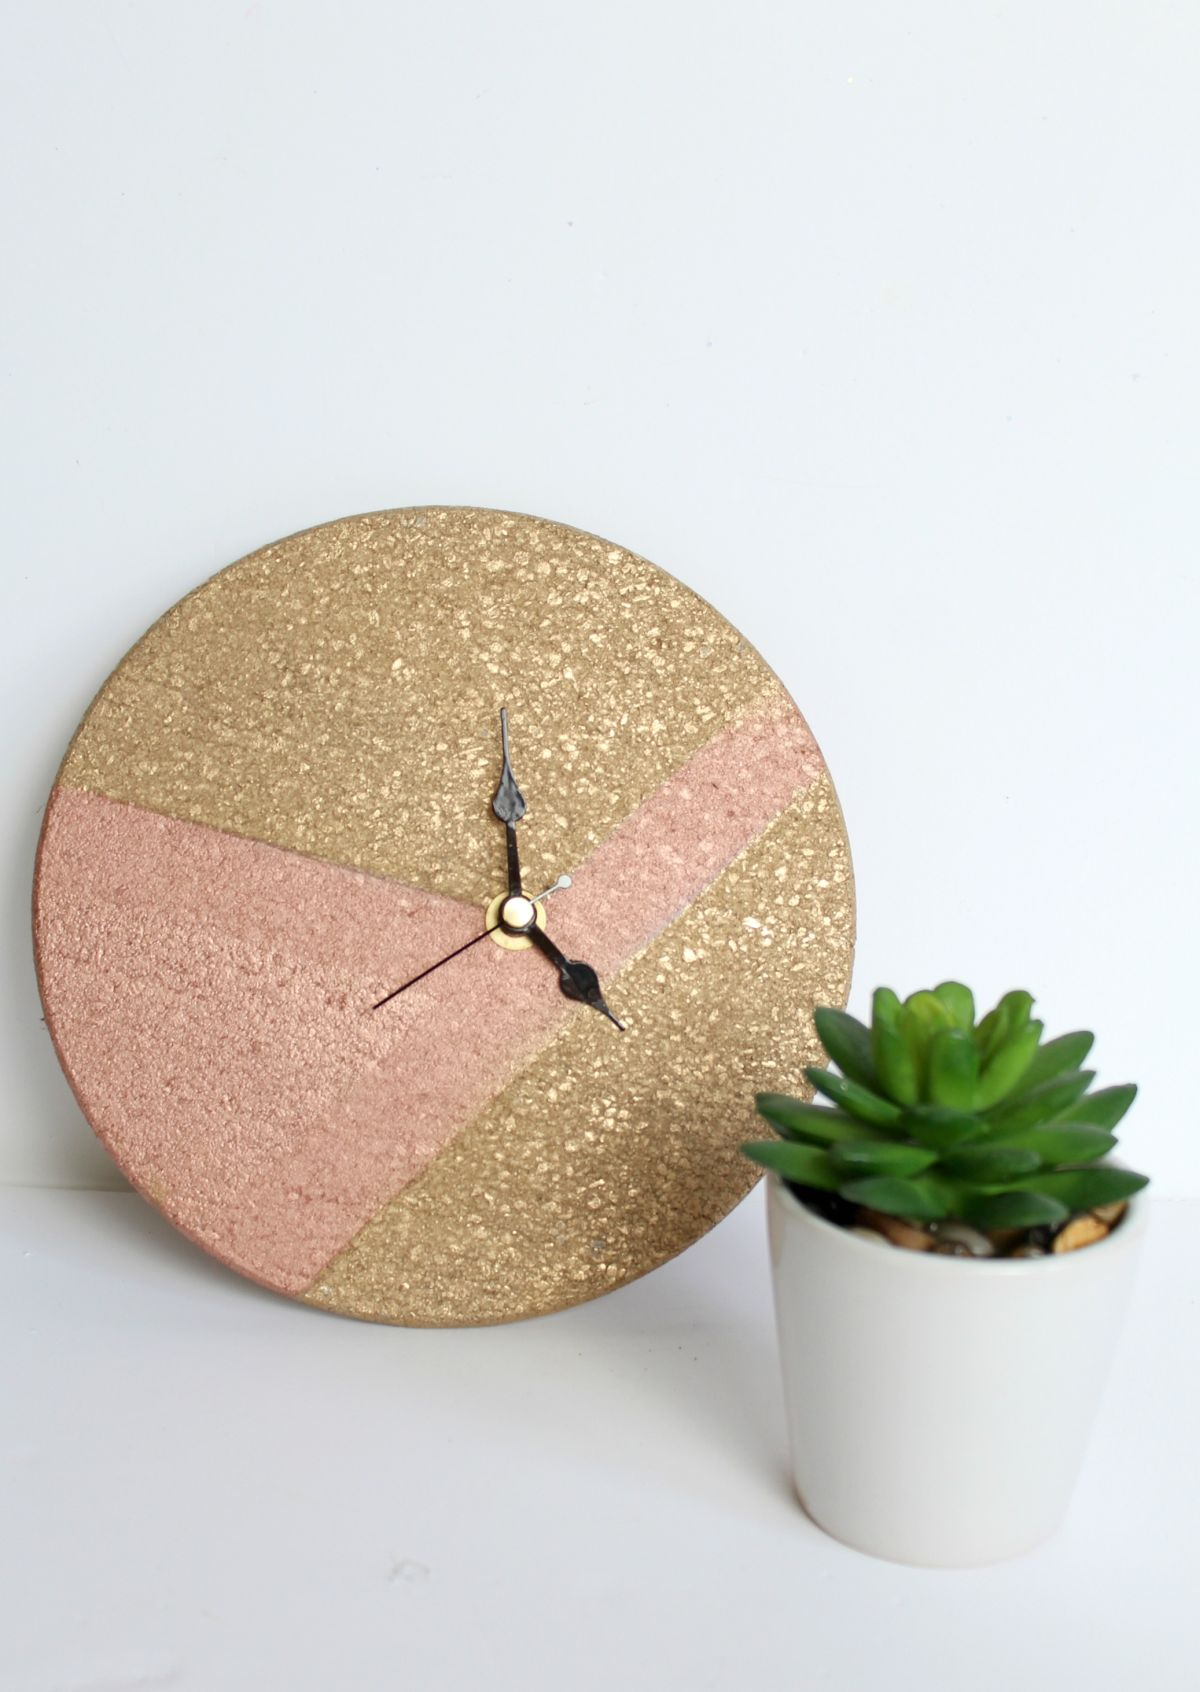 Mixed Metallics Geometric Clock Potted